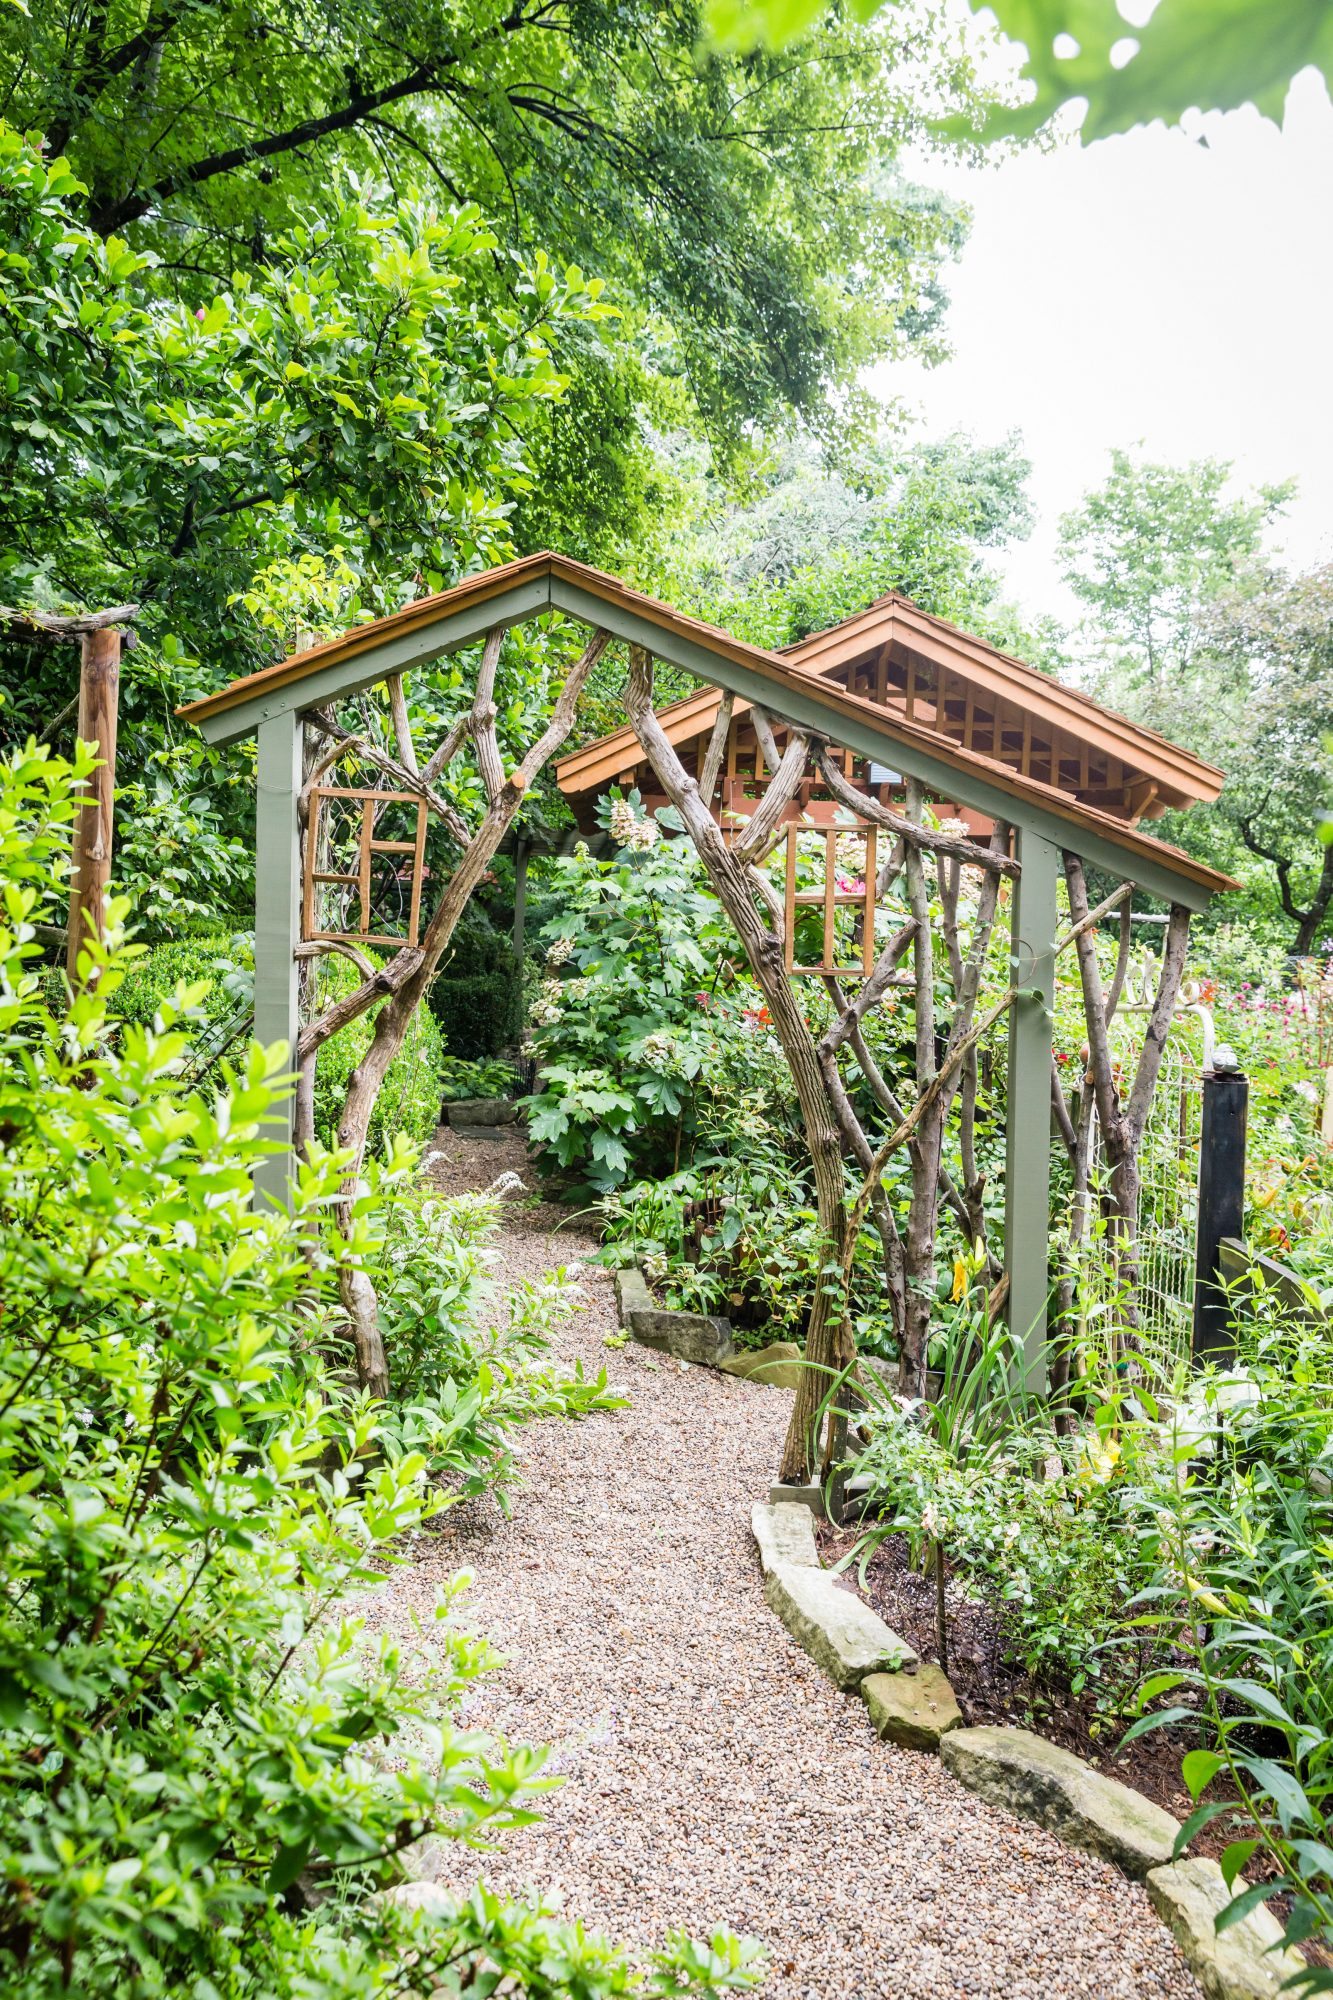 Mary Startzman Garden in Berea, Kentucky